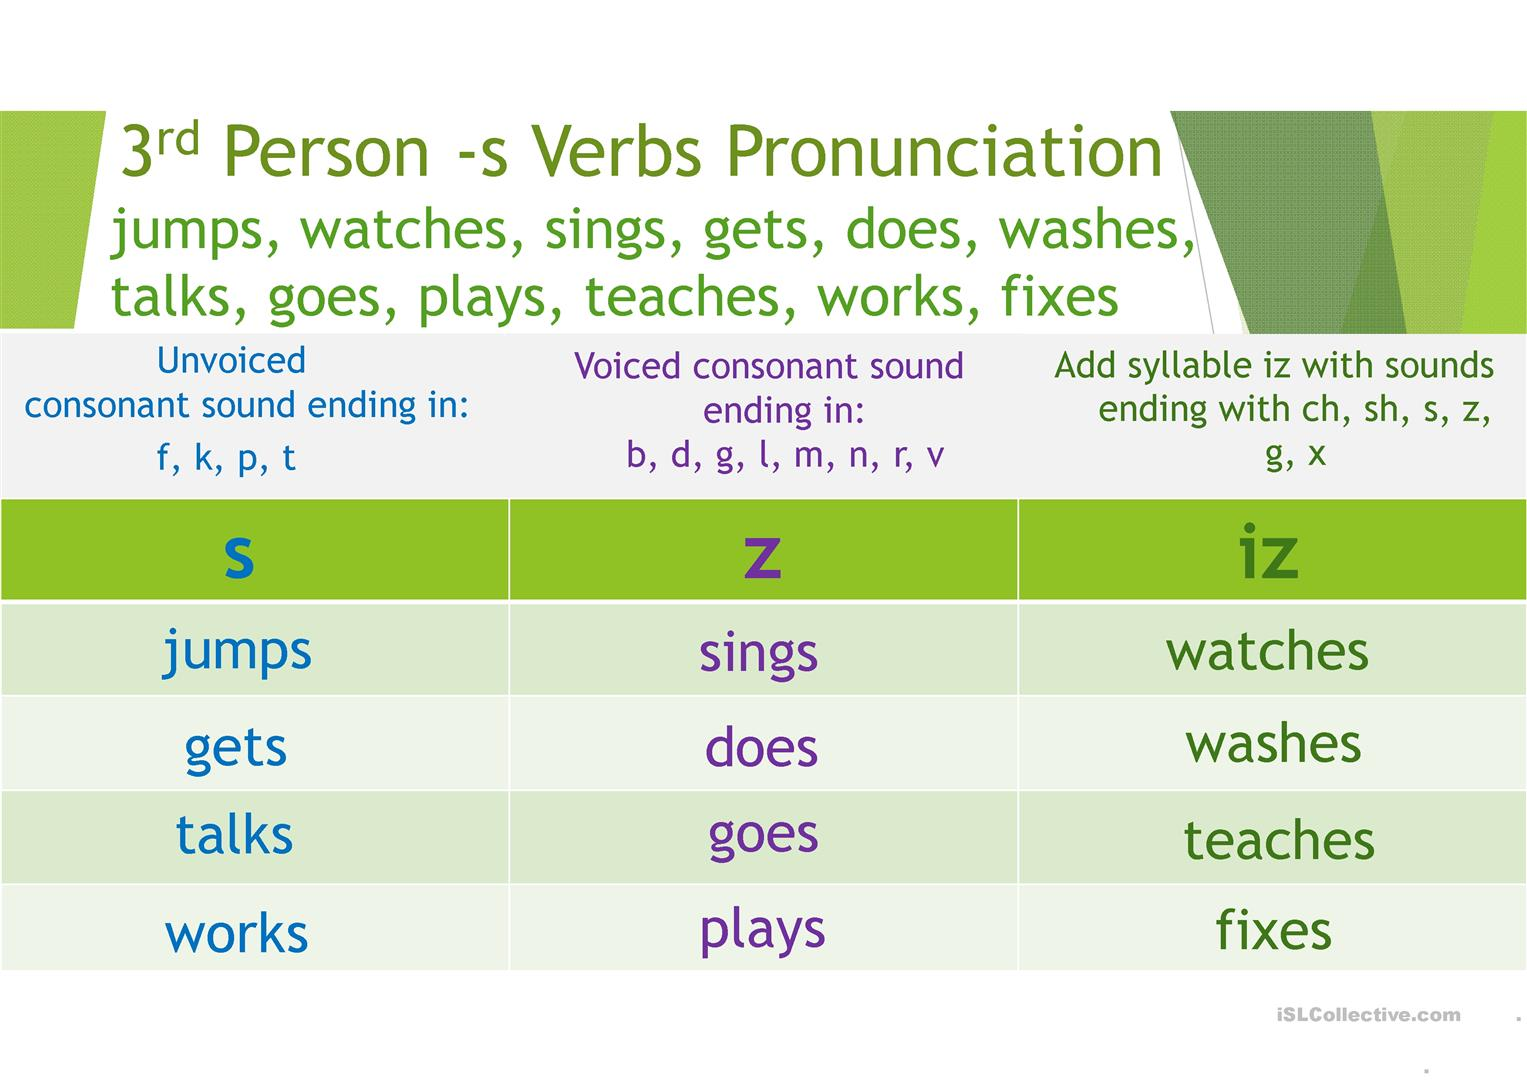 3rd Person Verbs